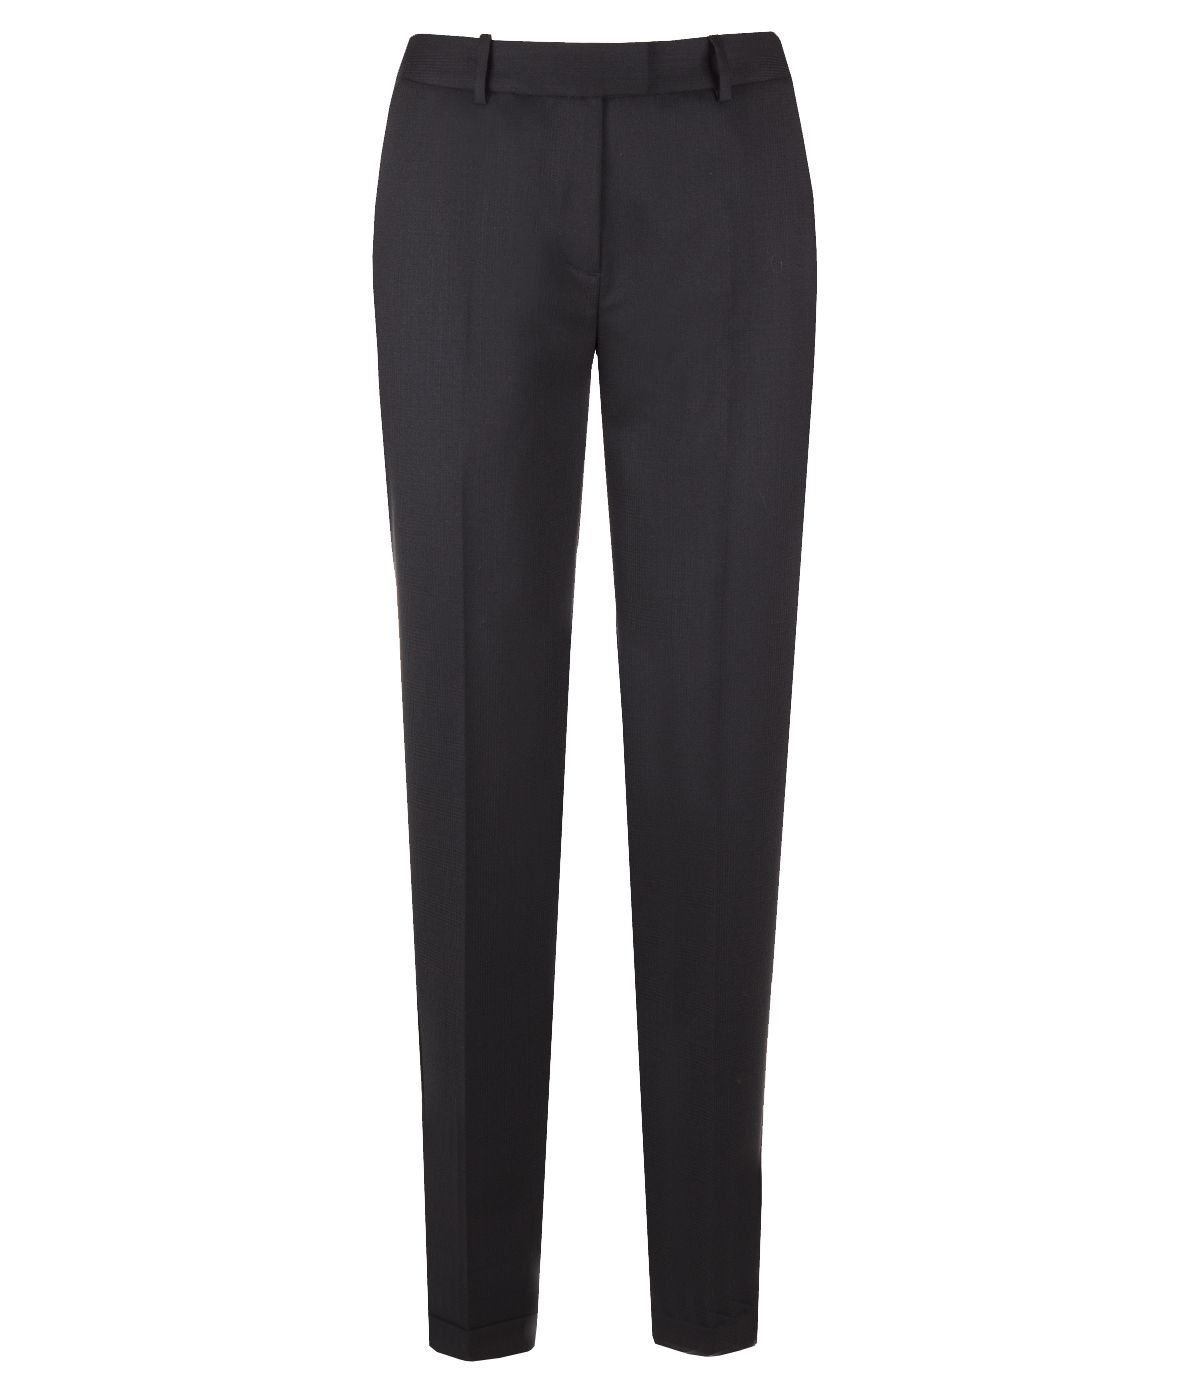 CLASSIC FIT BLACK TROUSERS 0